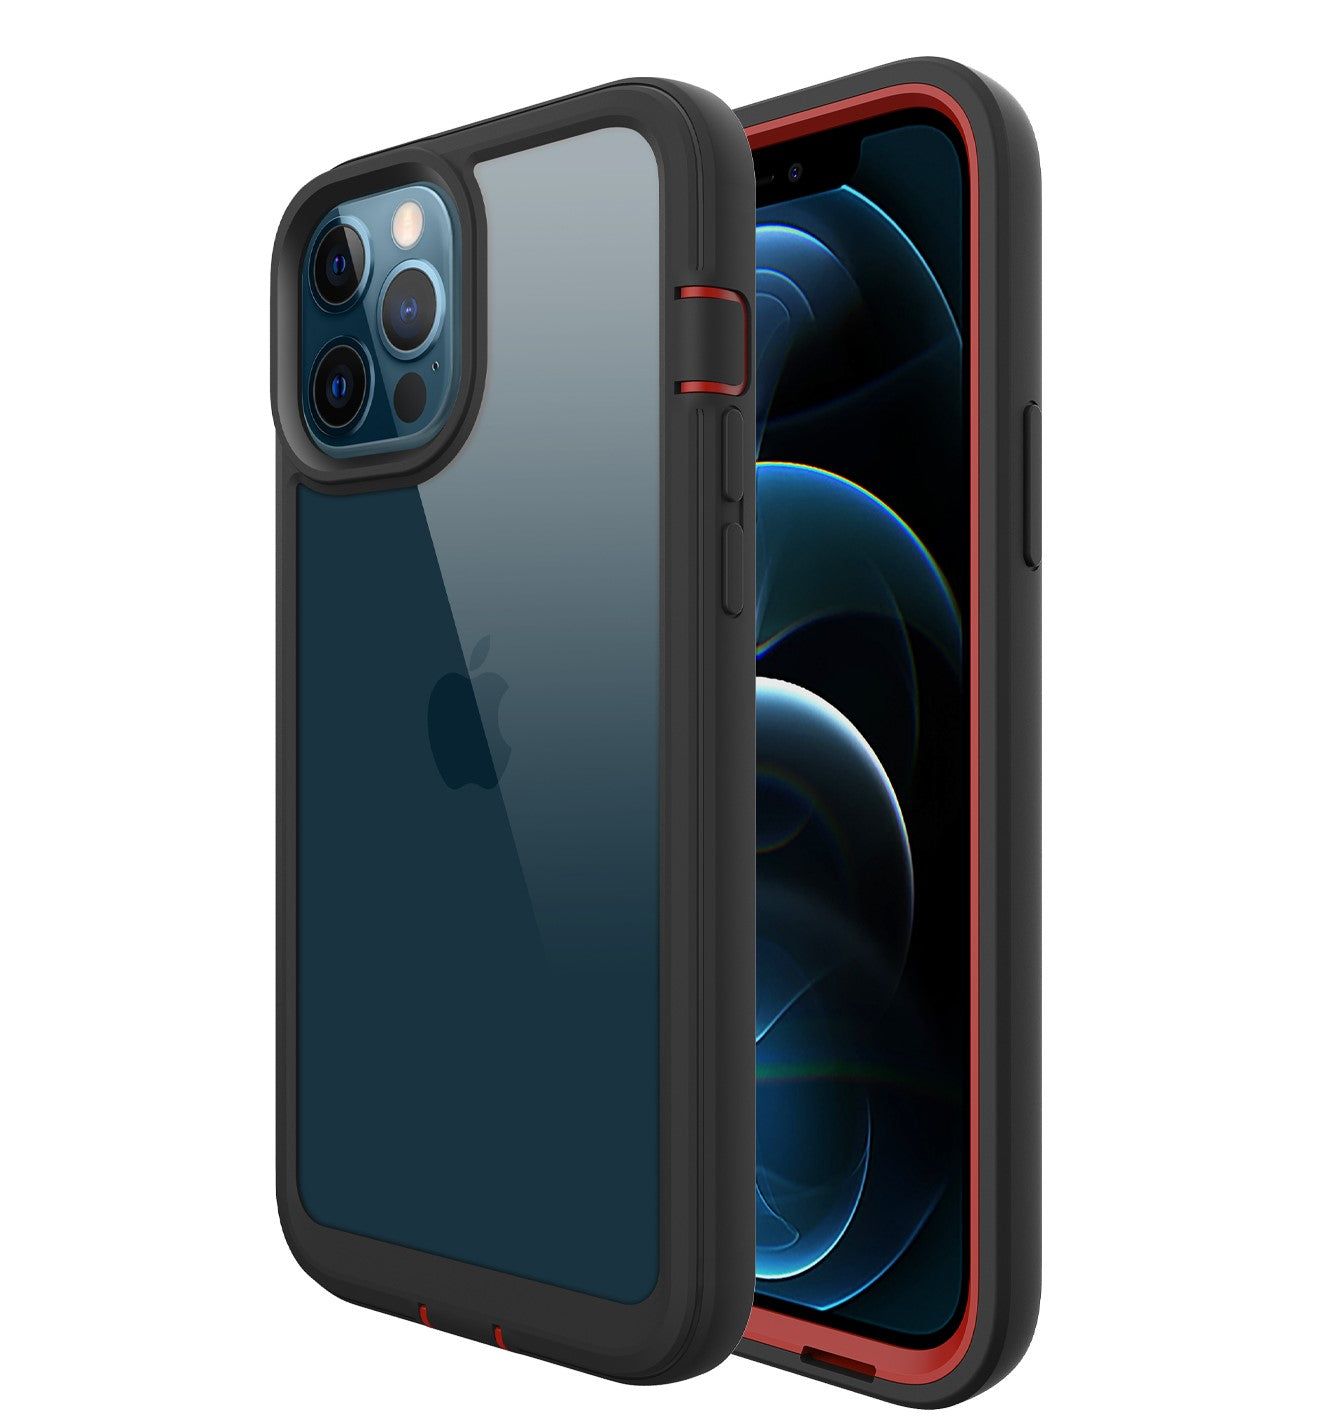 ZEOS Terrain Clear Case for iPhone 12 Pro